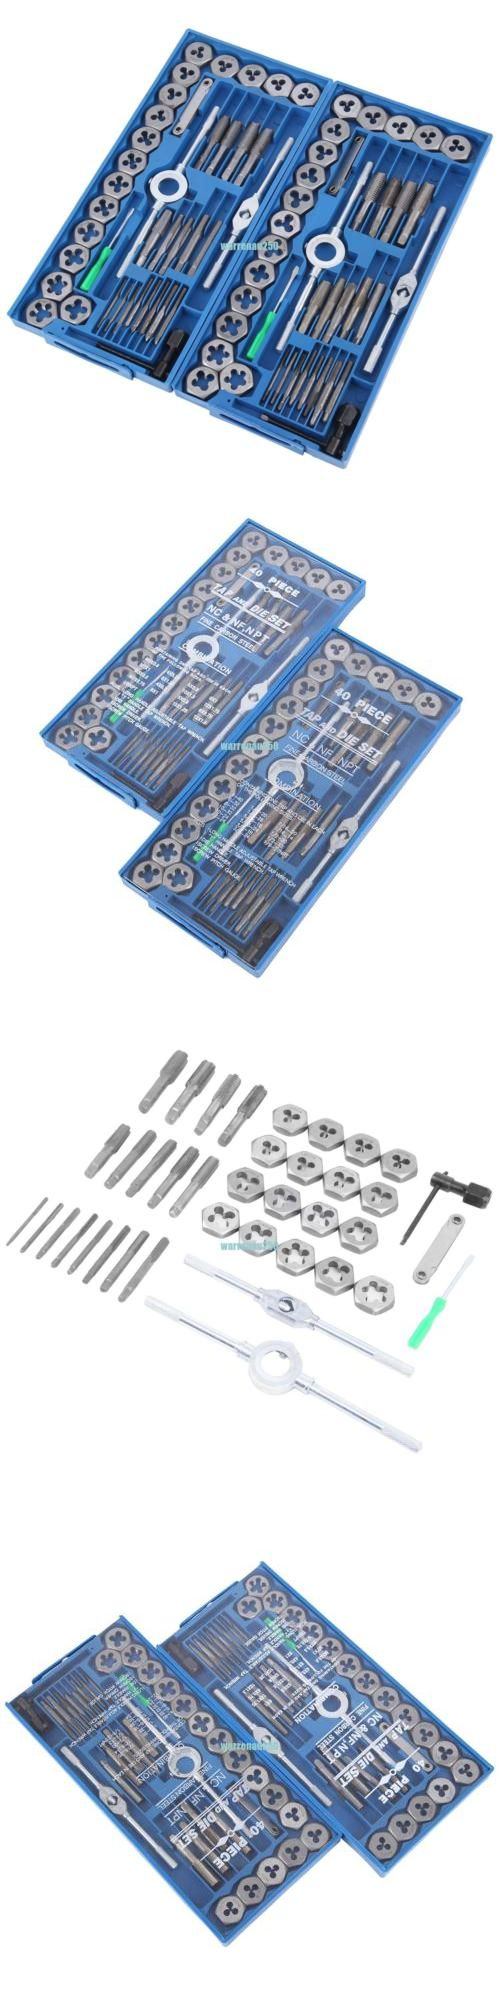 Pc sae u metric tap and die set screw extractor remover chasing w